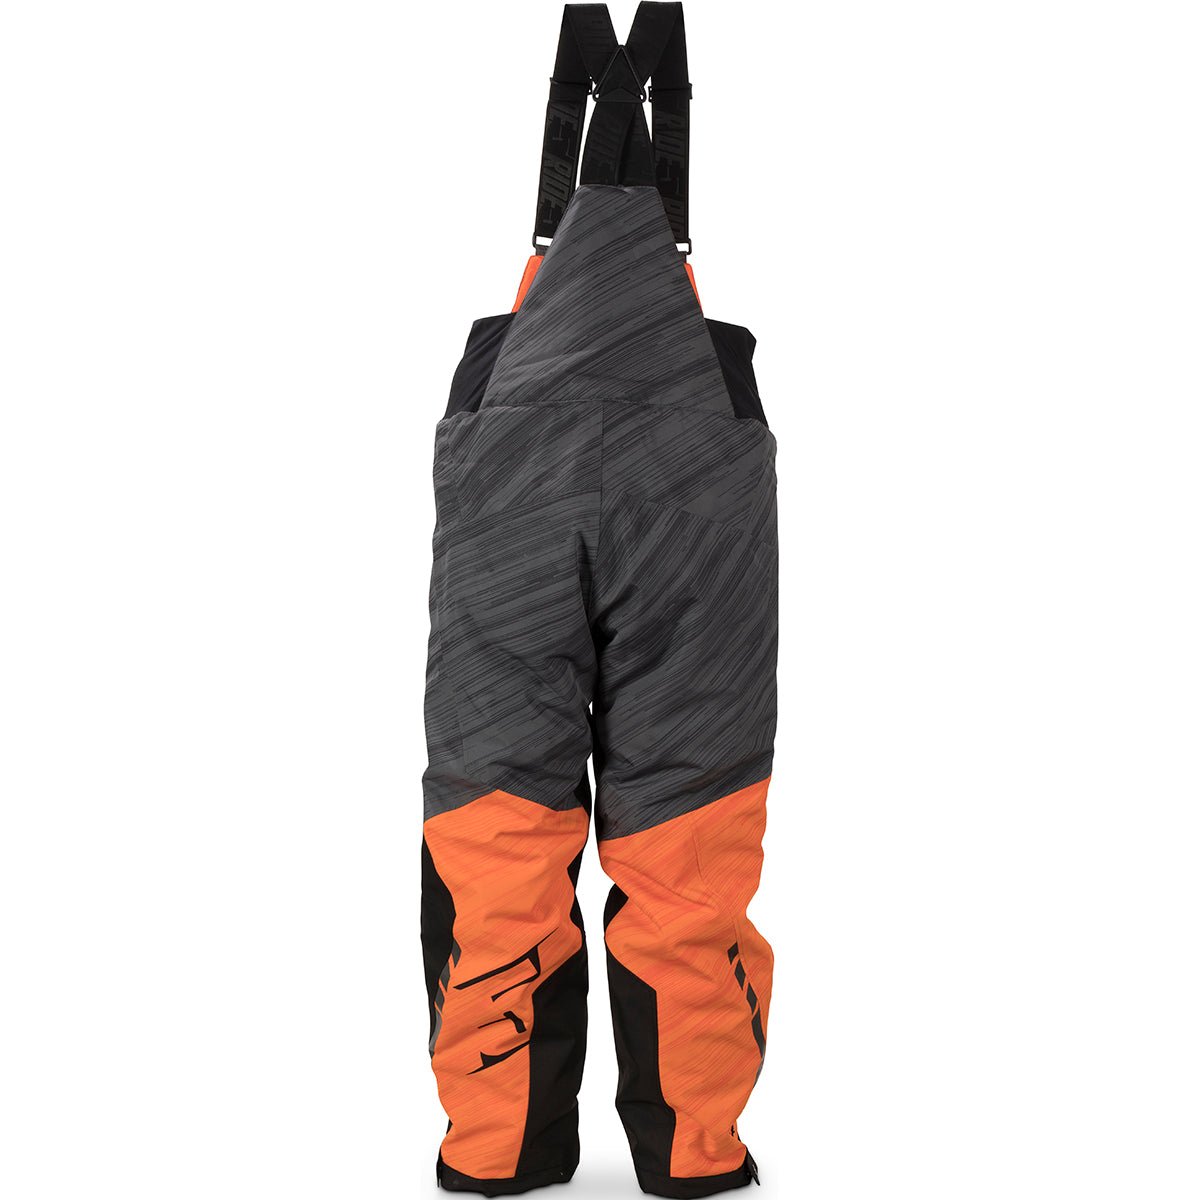 Range Insulated Bib (2020)